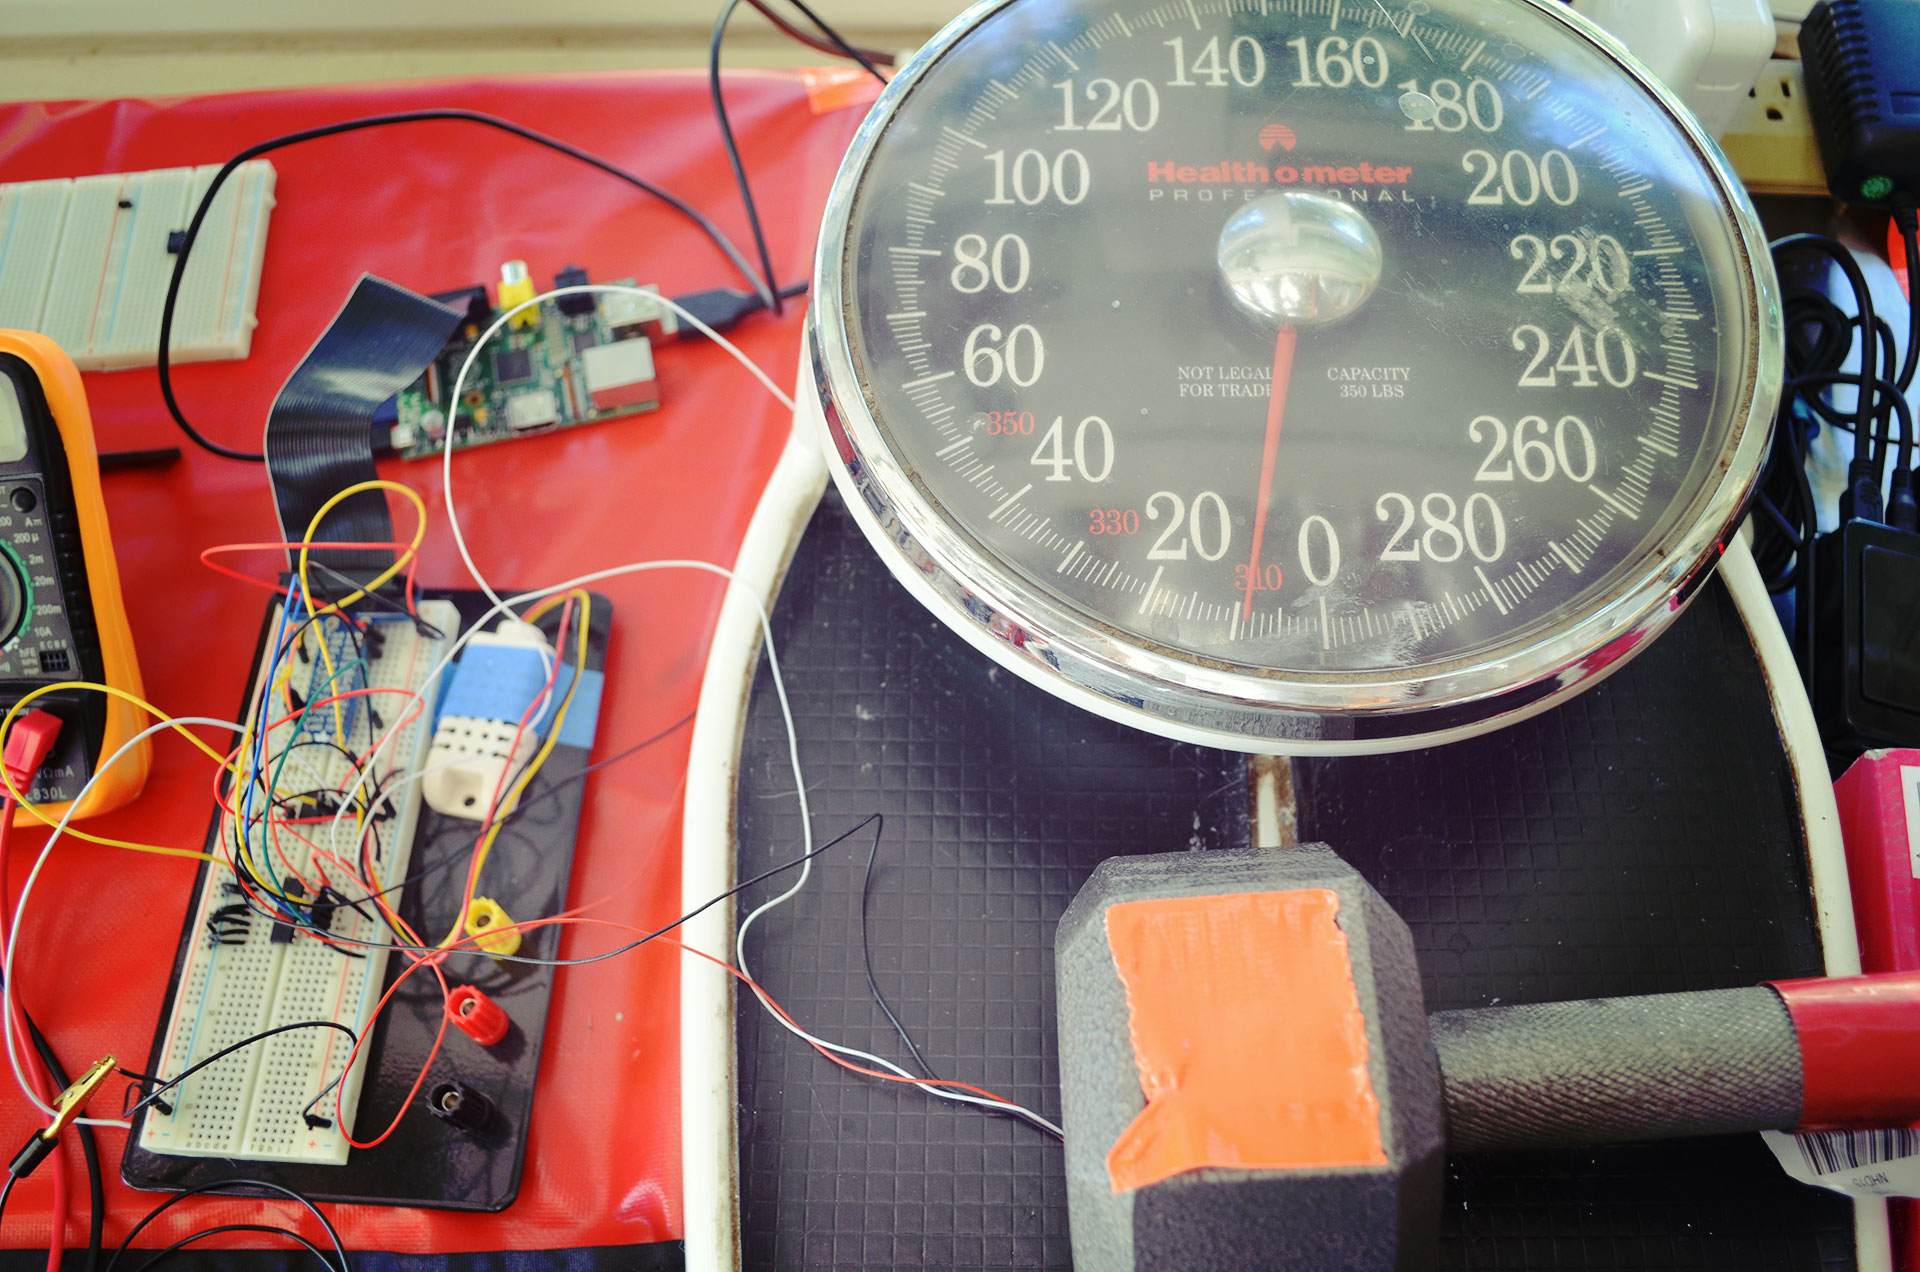 The weight is placed on the sensor on top of an analog scale. We can see the current load on the sensor is about 9 lbs.